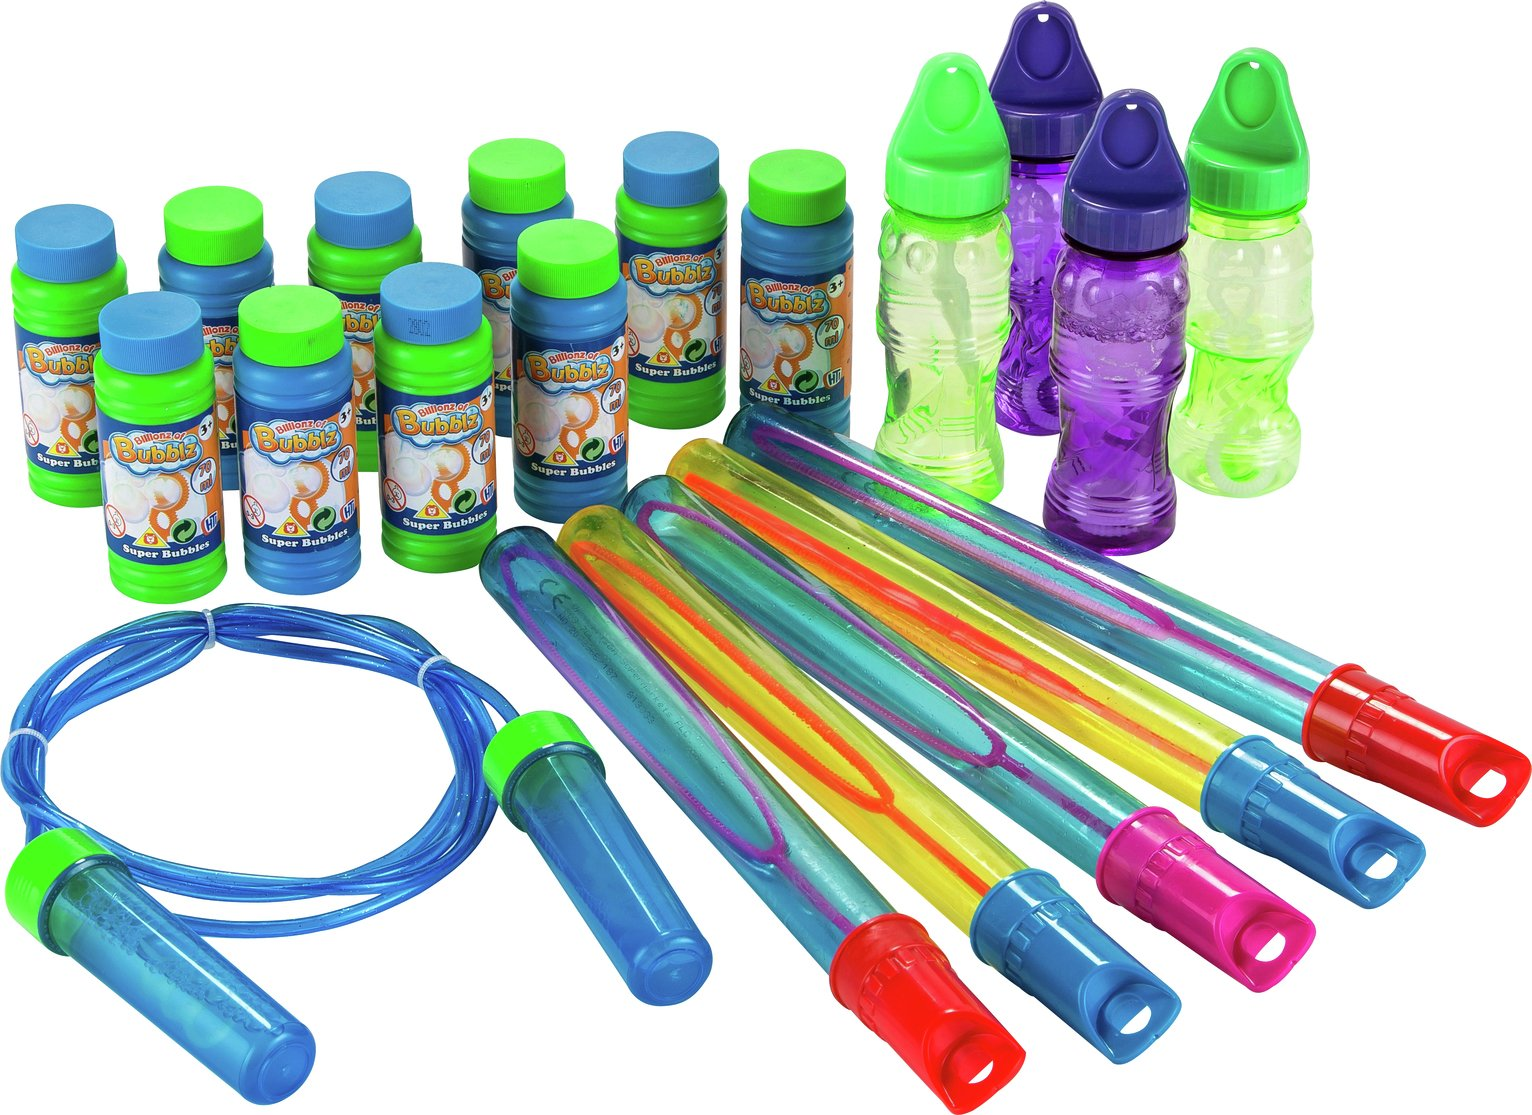 Image of Chad Valley 20 Piece Bubbles Party Set